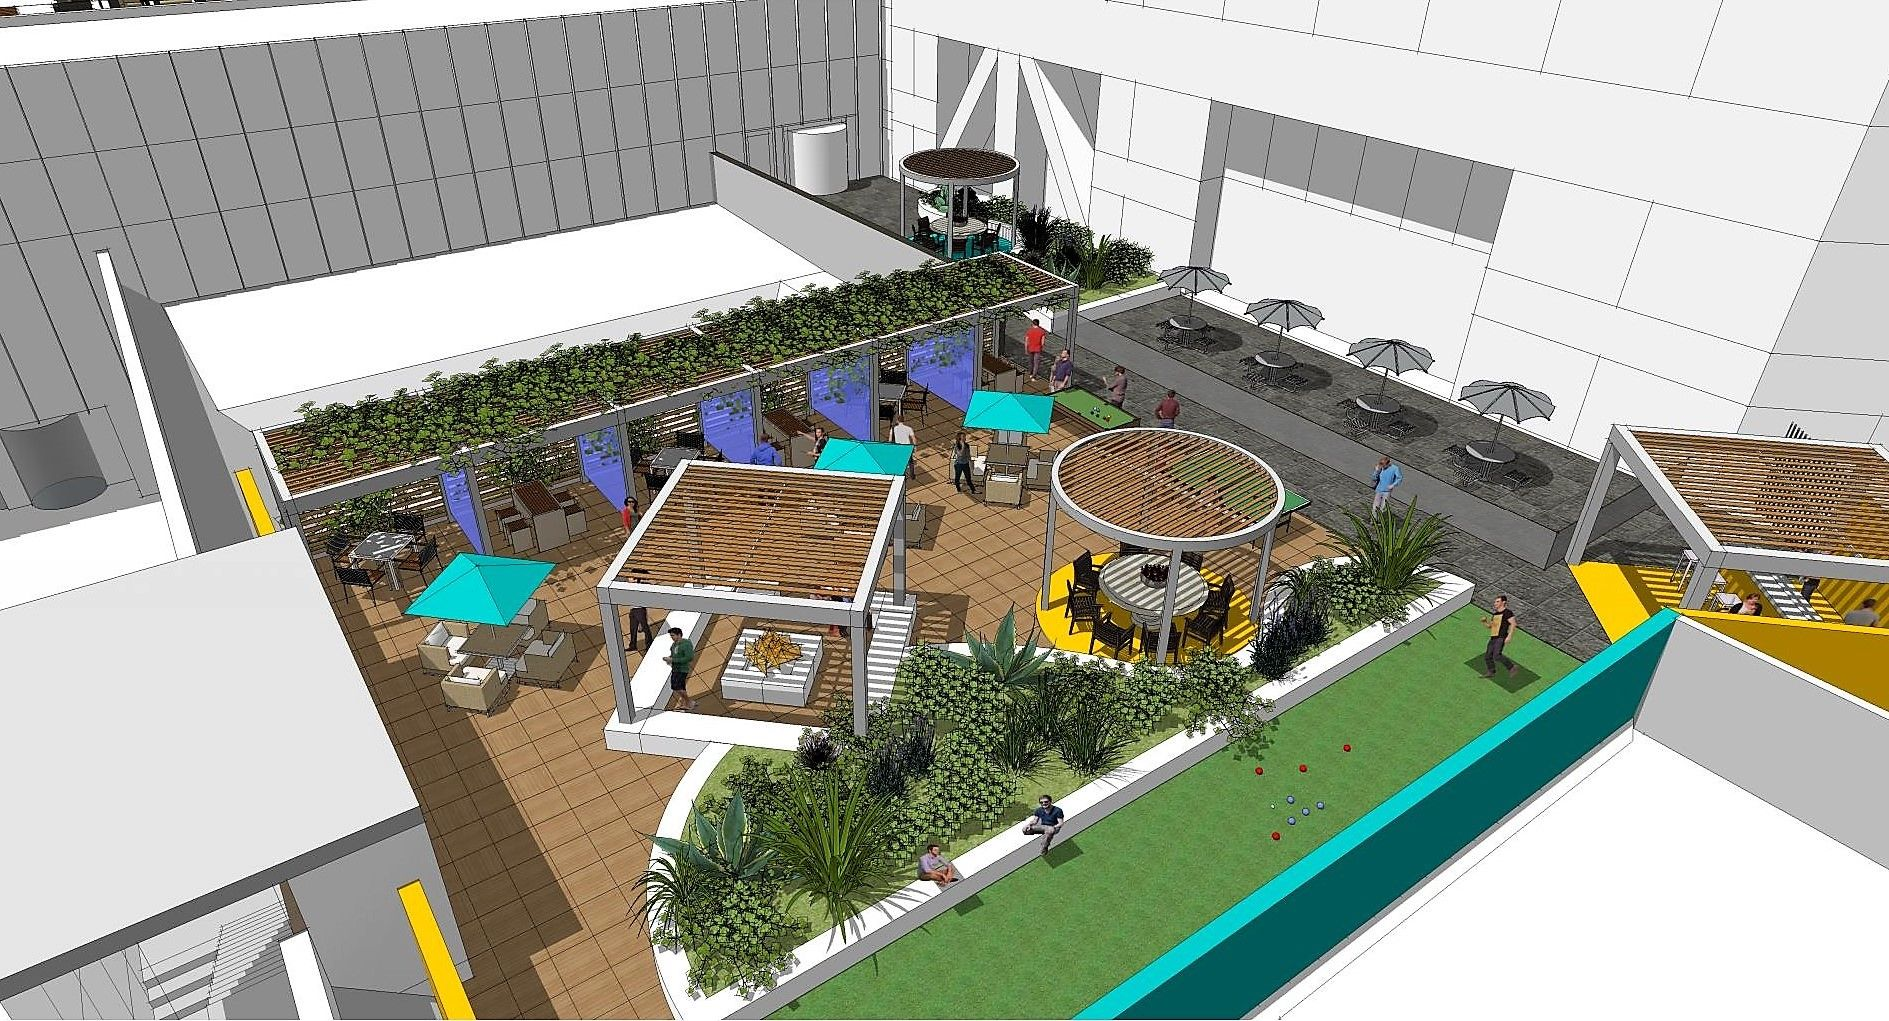 Office Building Amenity Roof Deck Architecture Design Officeleasing Roofdeck Roof Deck Office Building Architecture